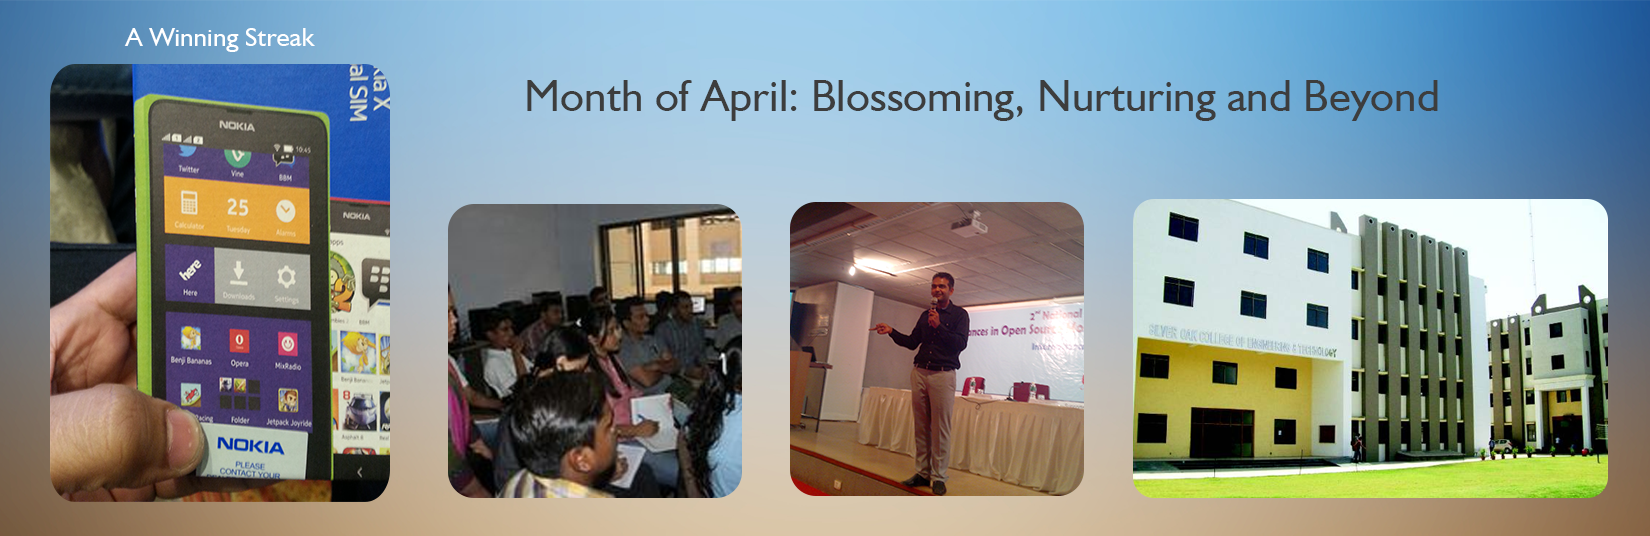 Month of April: Blossoming, Nurturing and Beyond